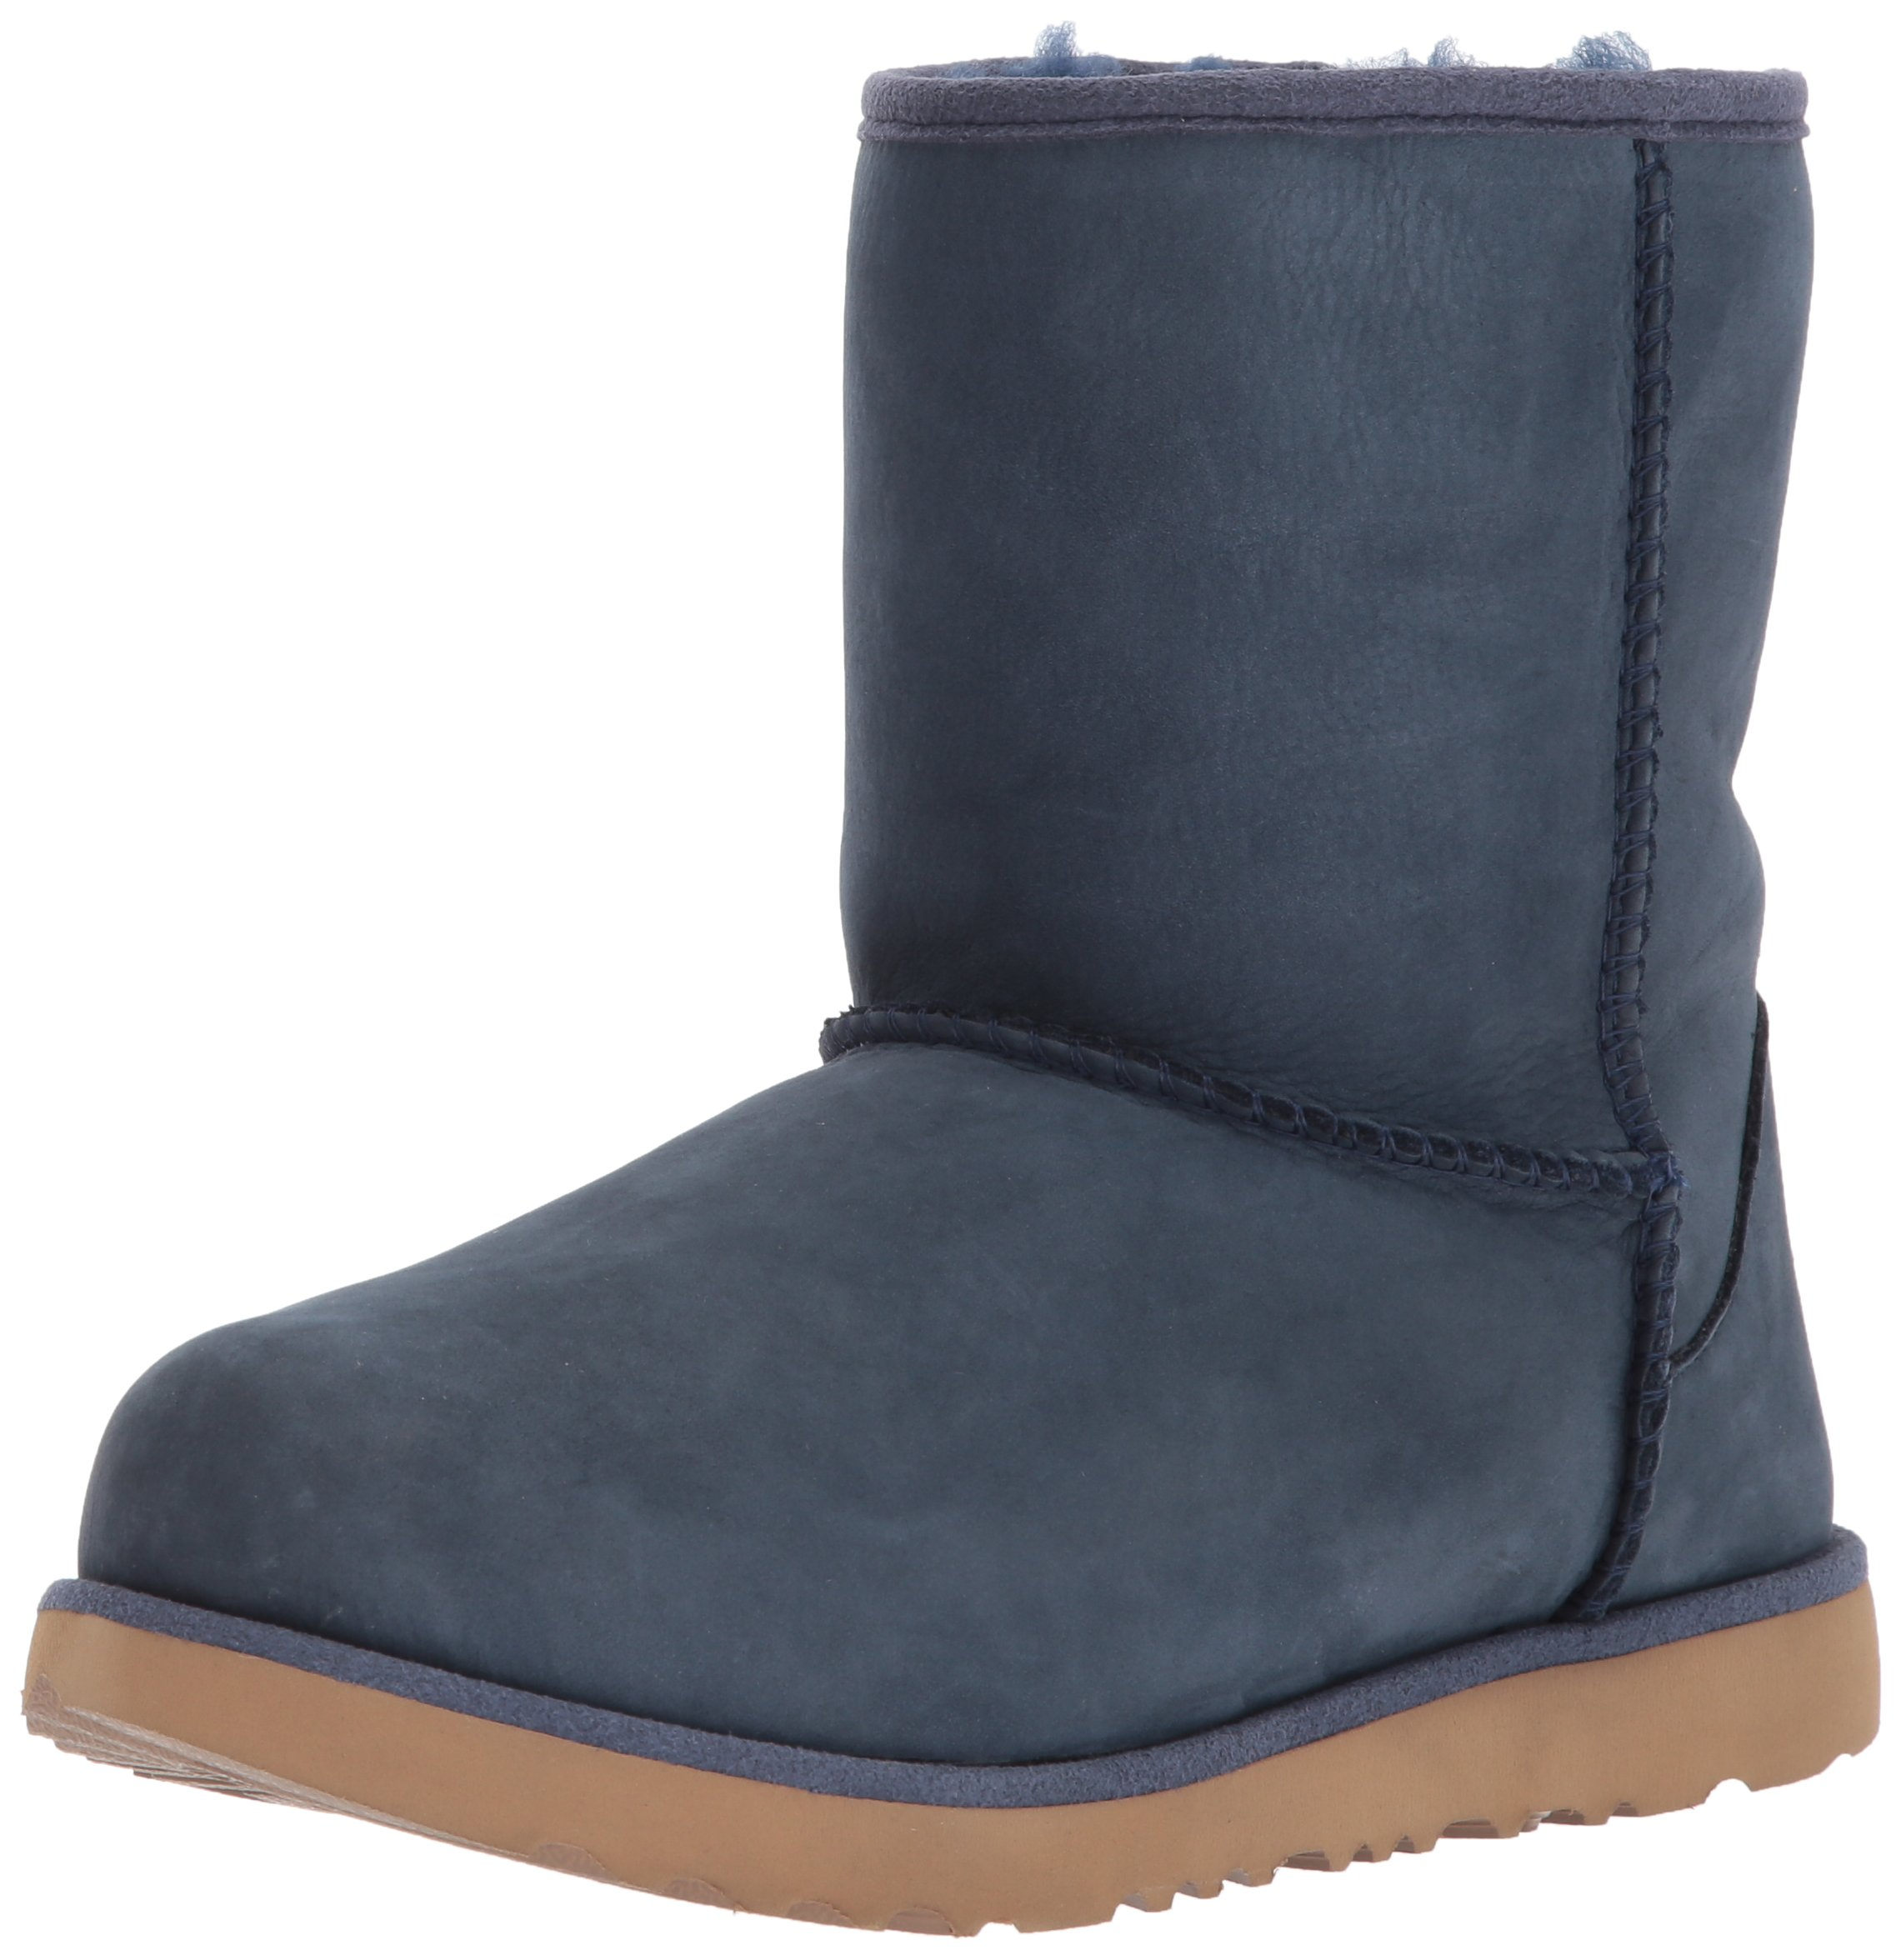 UGG Kids K Classic Short II WP Pull-On Boot, Navy, 1 M US Little Kid